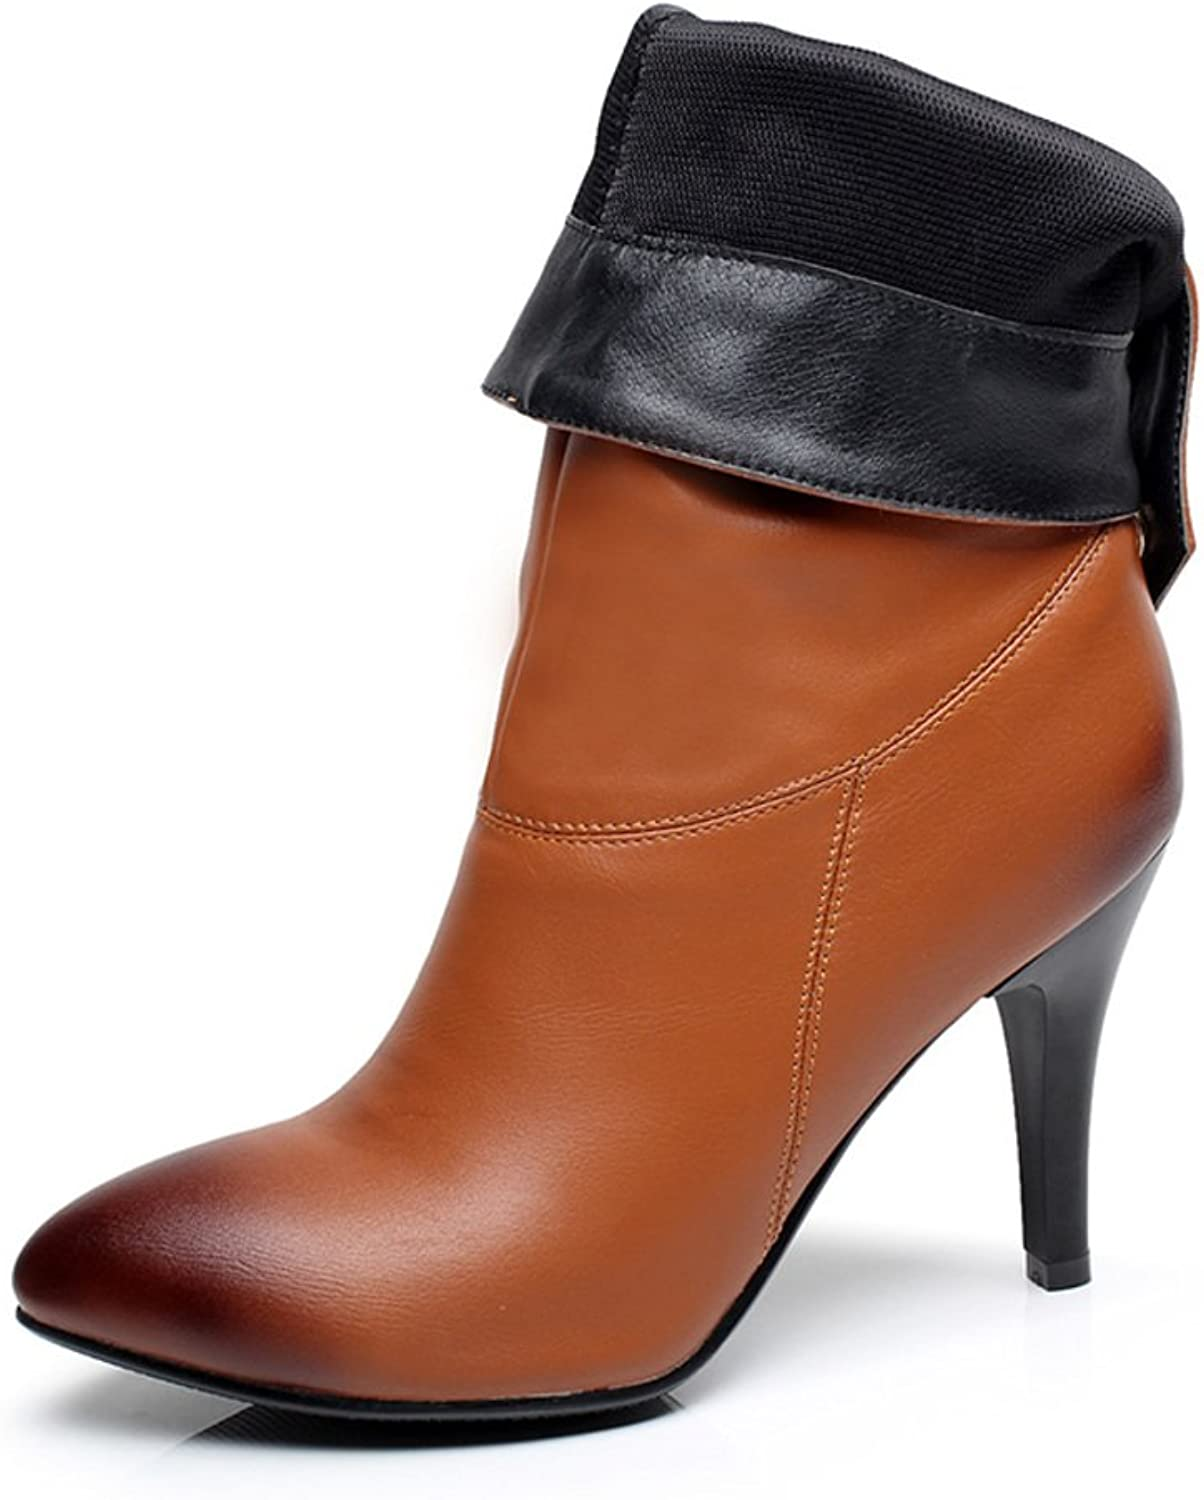 RHFDVGDS smart shoe Fall pointed high heel stiletto boots Martin ladies ankle boots